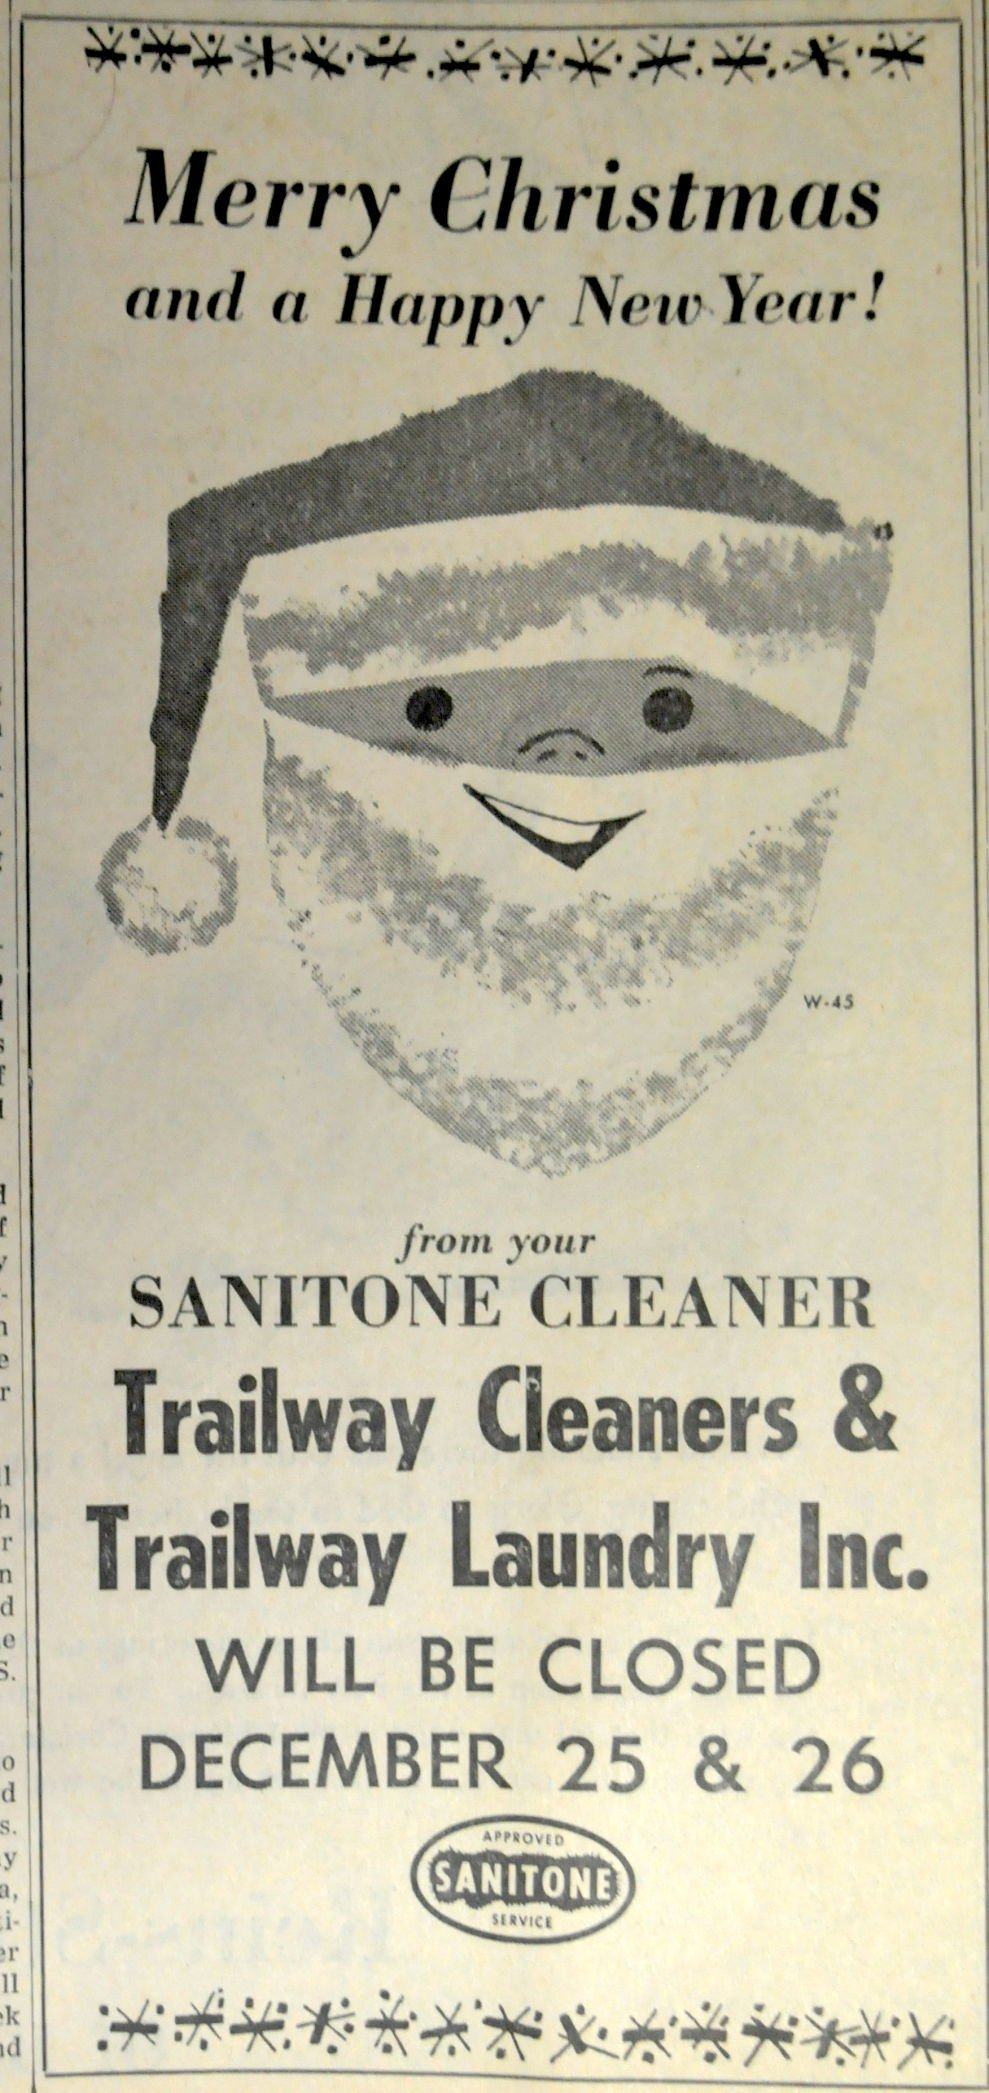 Trailway Cleaners